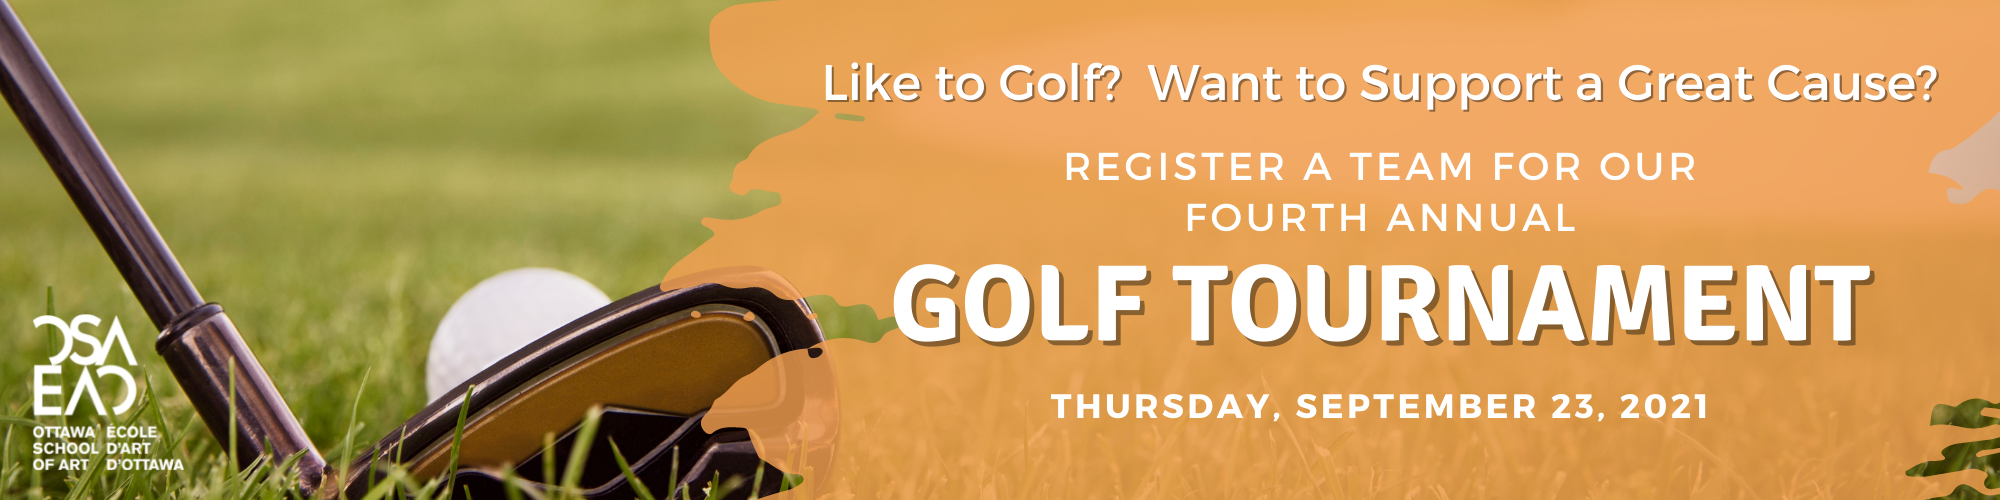 Like to Golf Want to Support a Great Cause